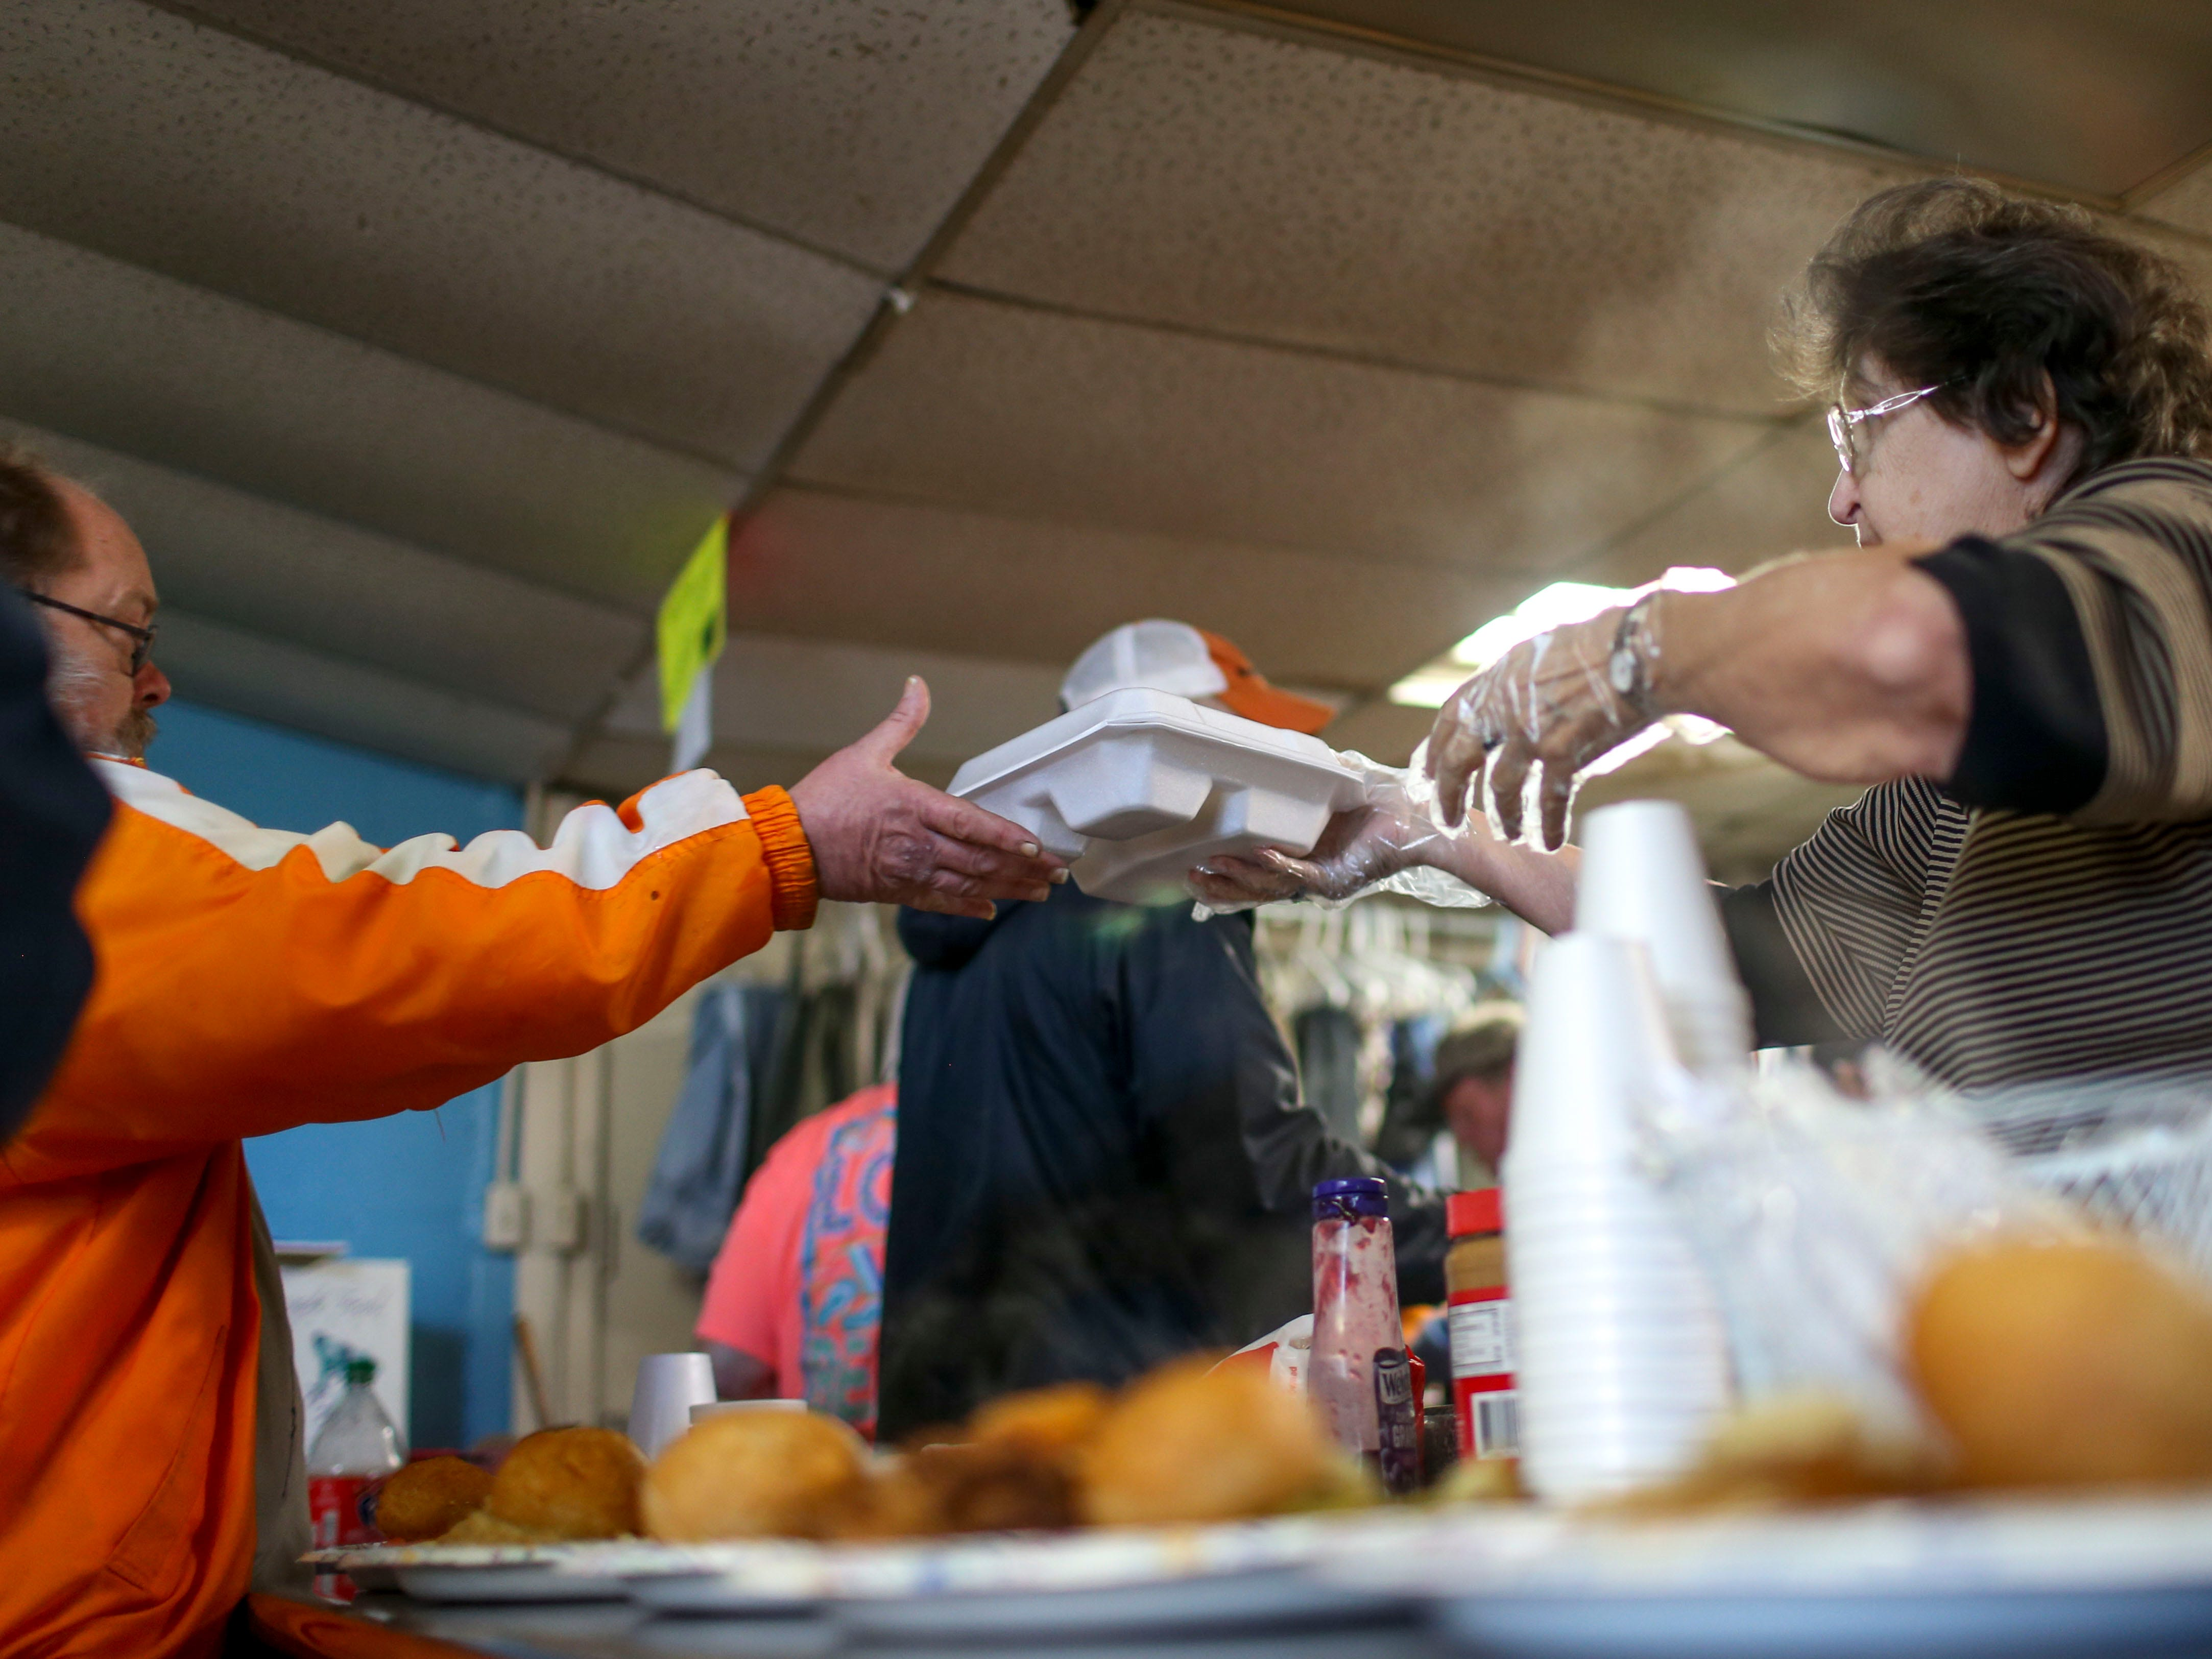 Judith Hindman passes a to-go plate to Greg Anderson to distribution amongst those arriving late and needing to head out the door at the annual Thanksgiving meal put on by Safe Harbor Day Mission in Jackson, Tenn., on Wednesday, Nov. 21, 2018.